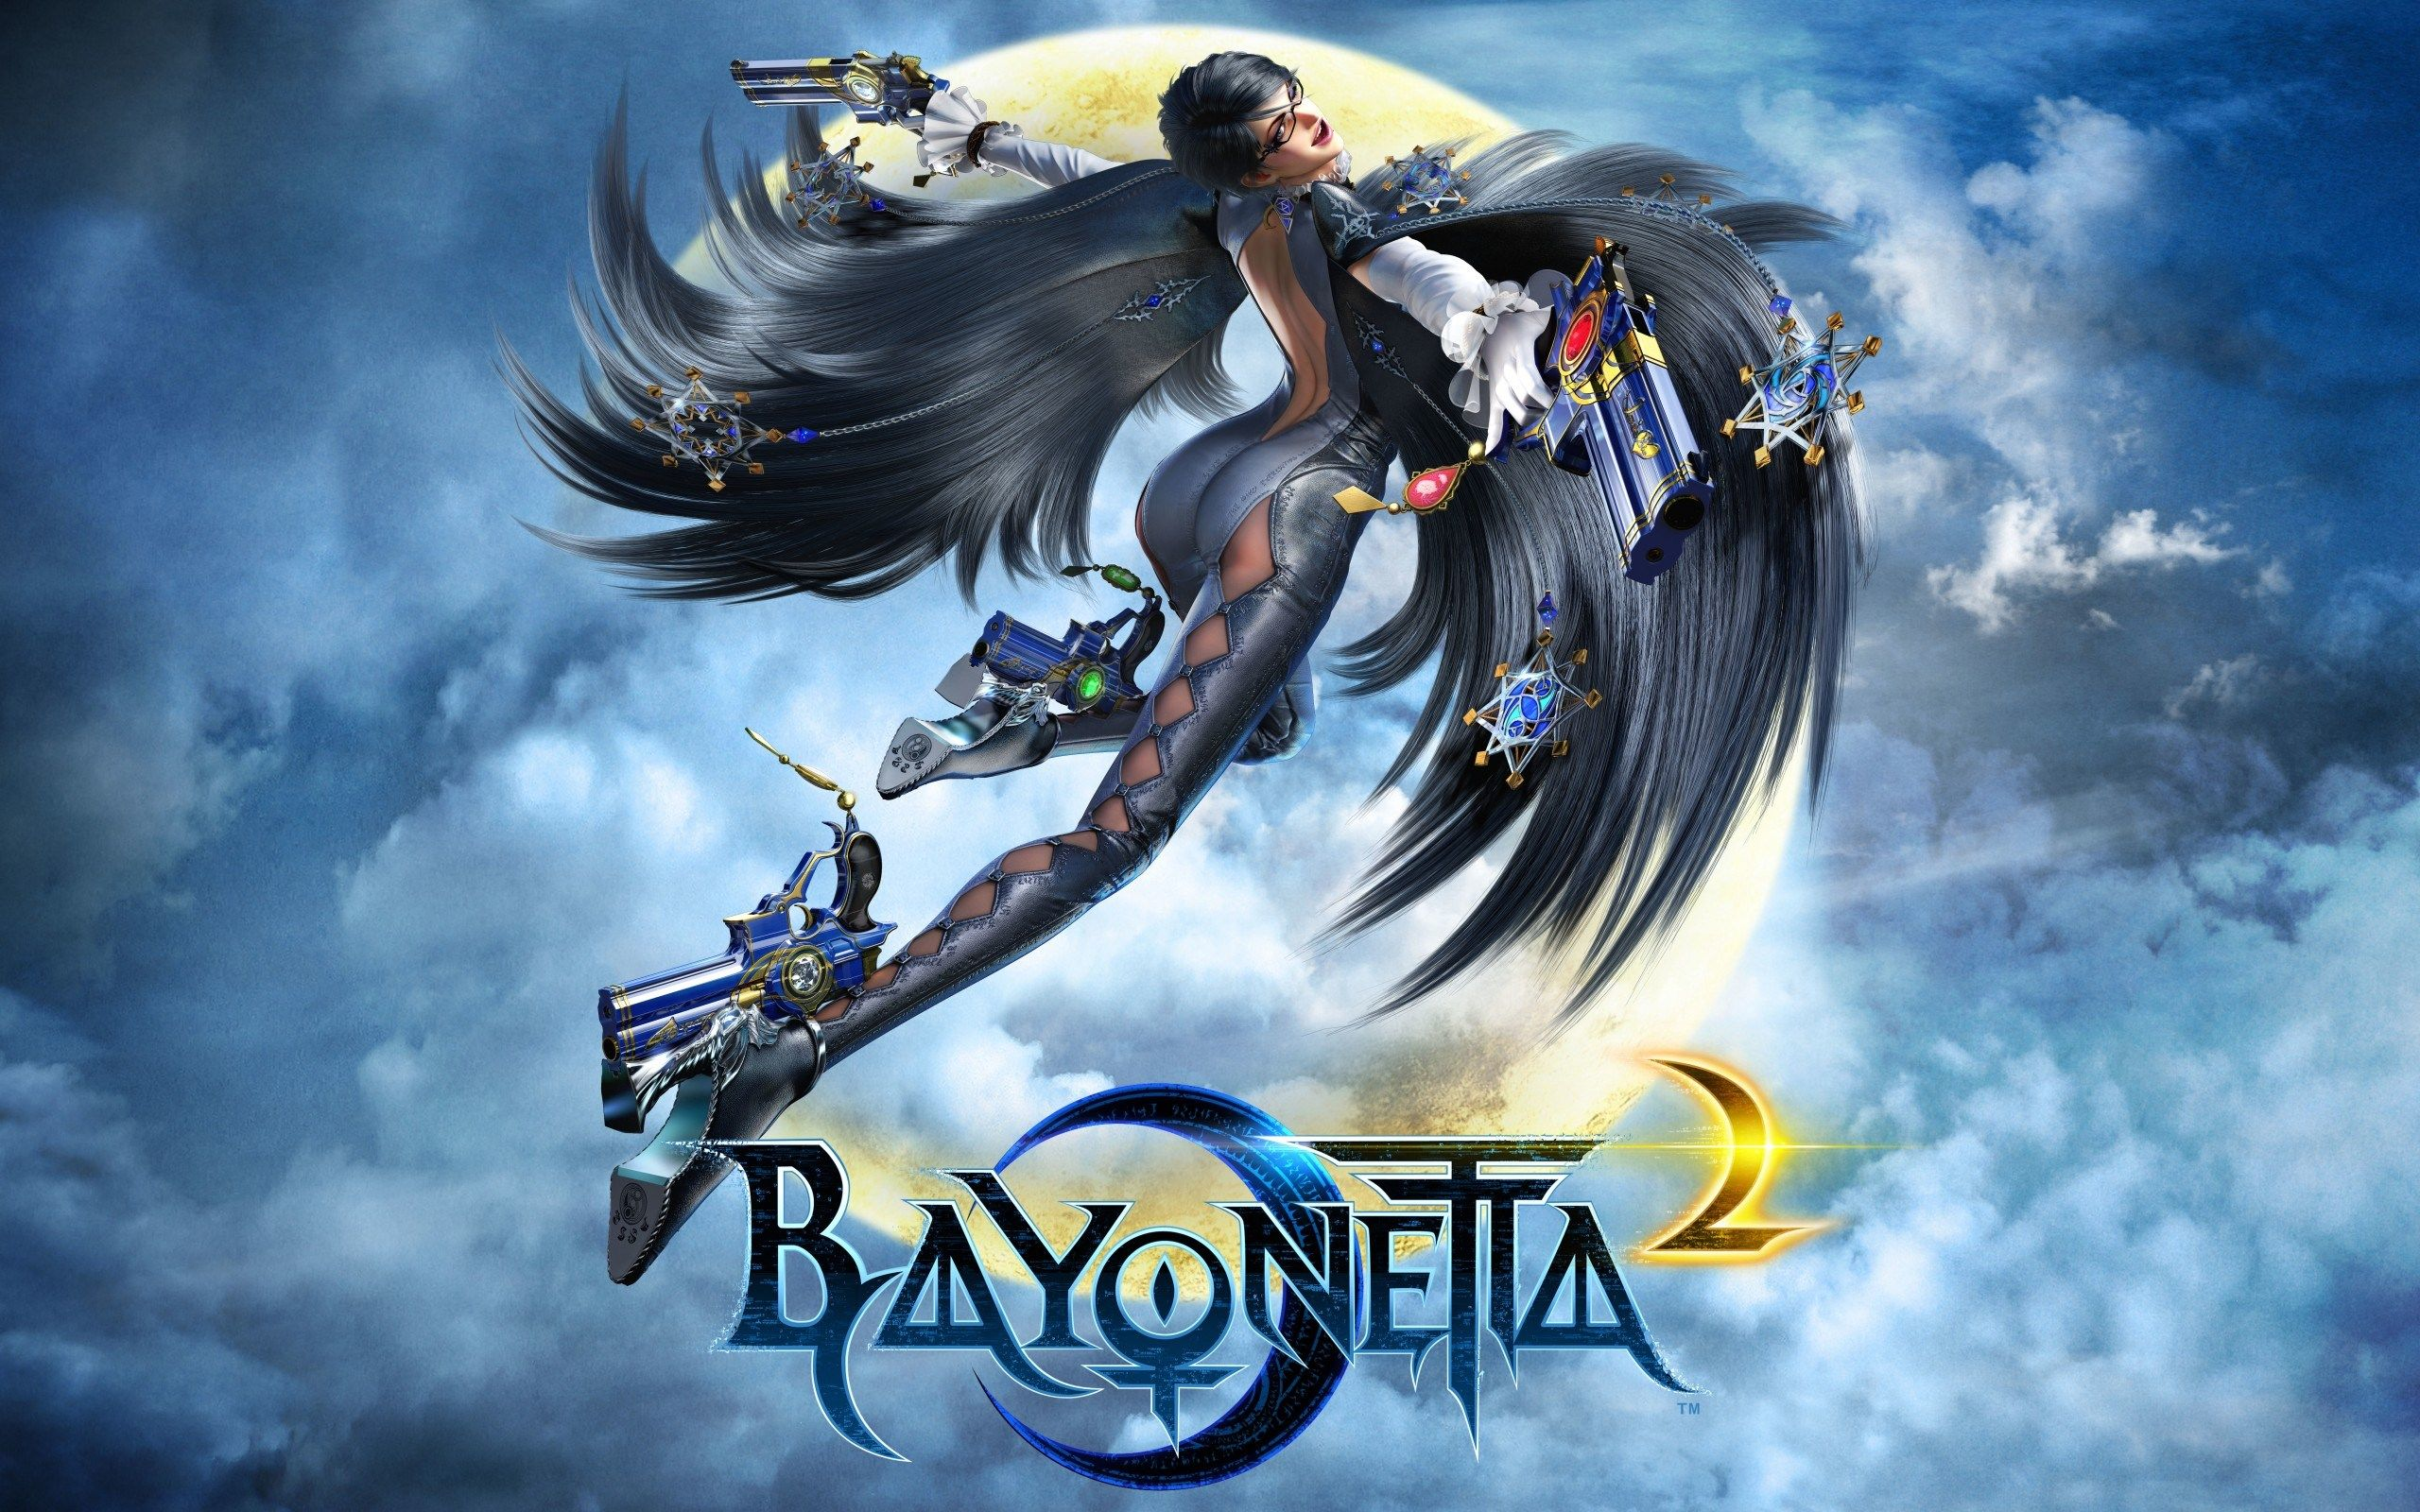 2560x1600 Px Backgrounds In High Quality Bayonetta 2 Wallpaper By Denton Ross For Tw Com Bayonetta Wii U New Video Games